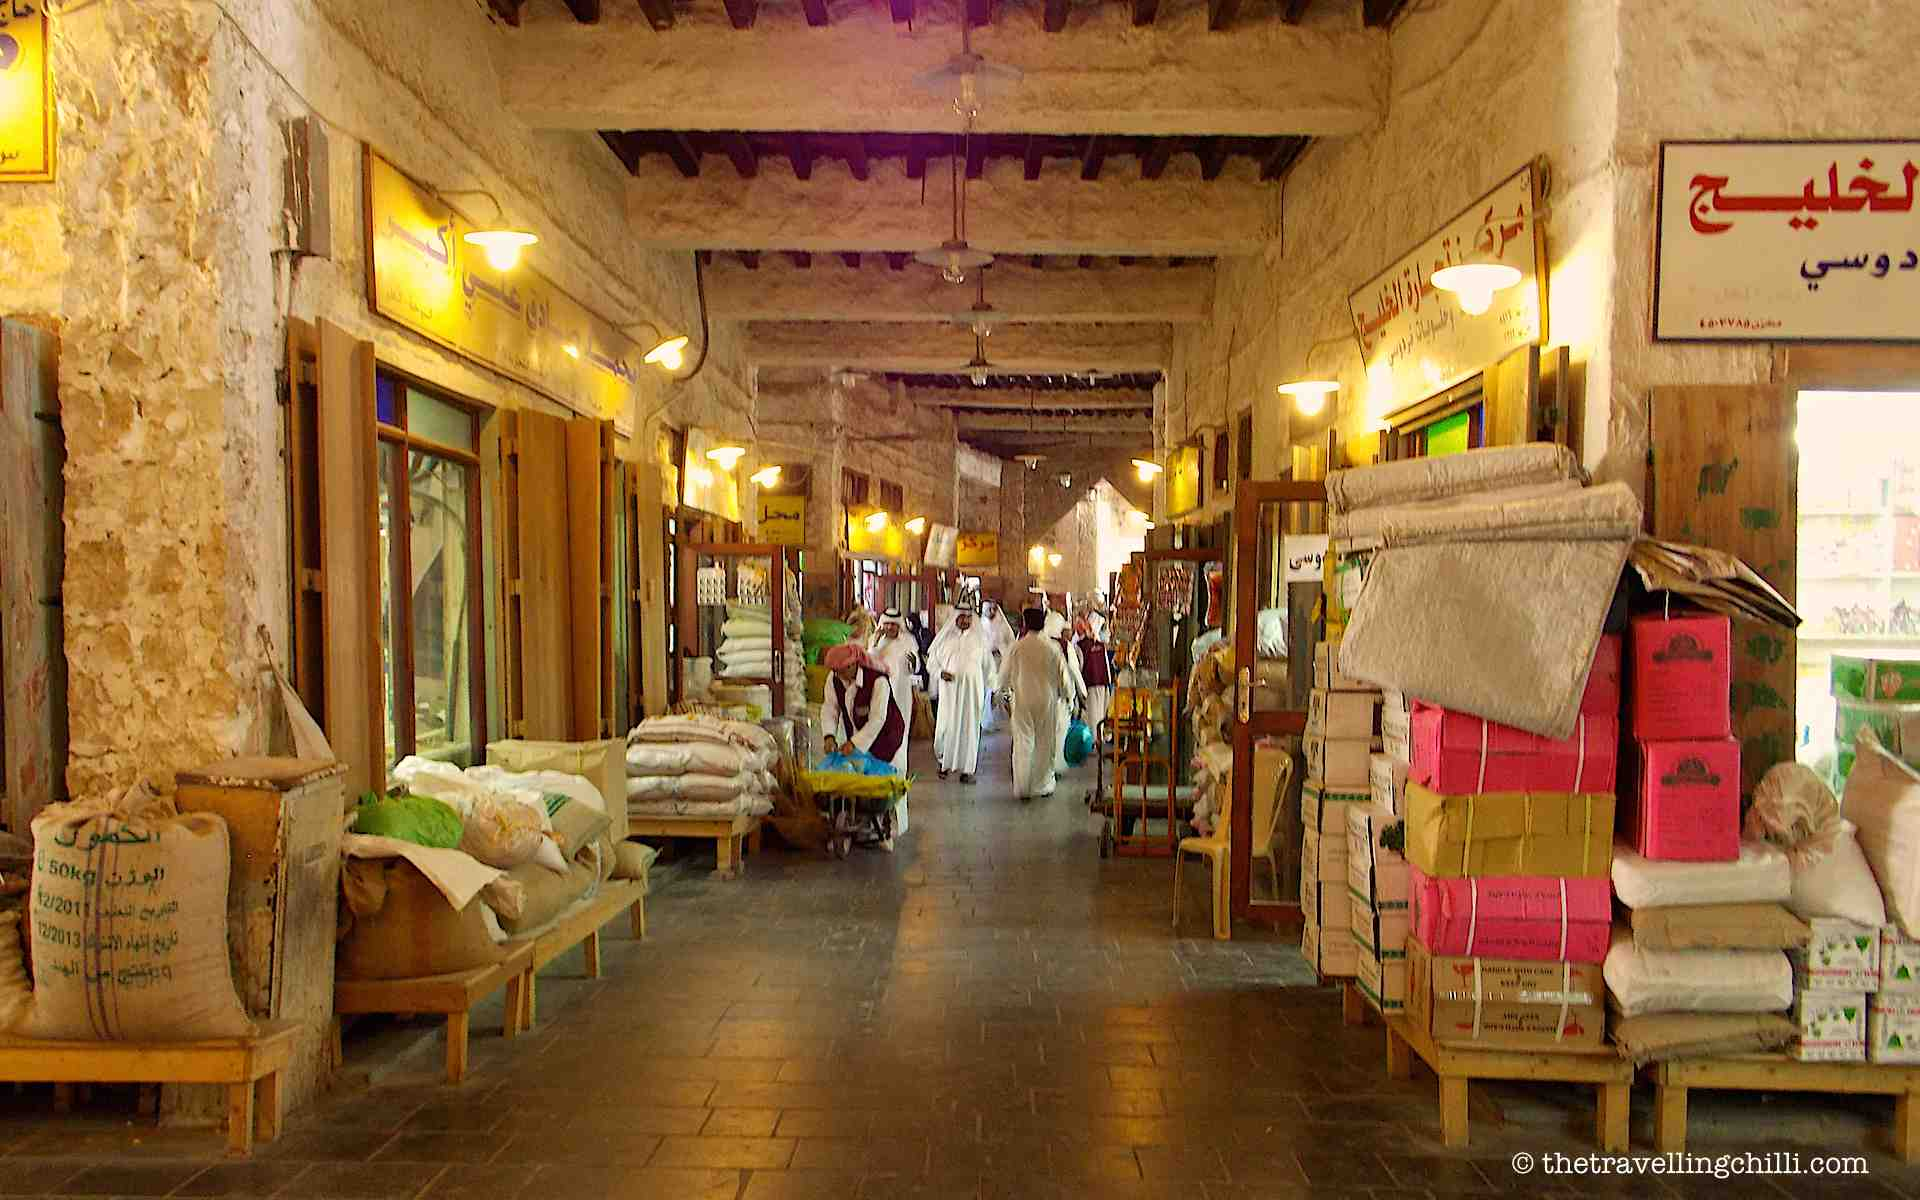 souq waqif qatar doha |best Things to do in Doha Qatar | things to do in Qatar | Doha things to do